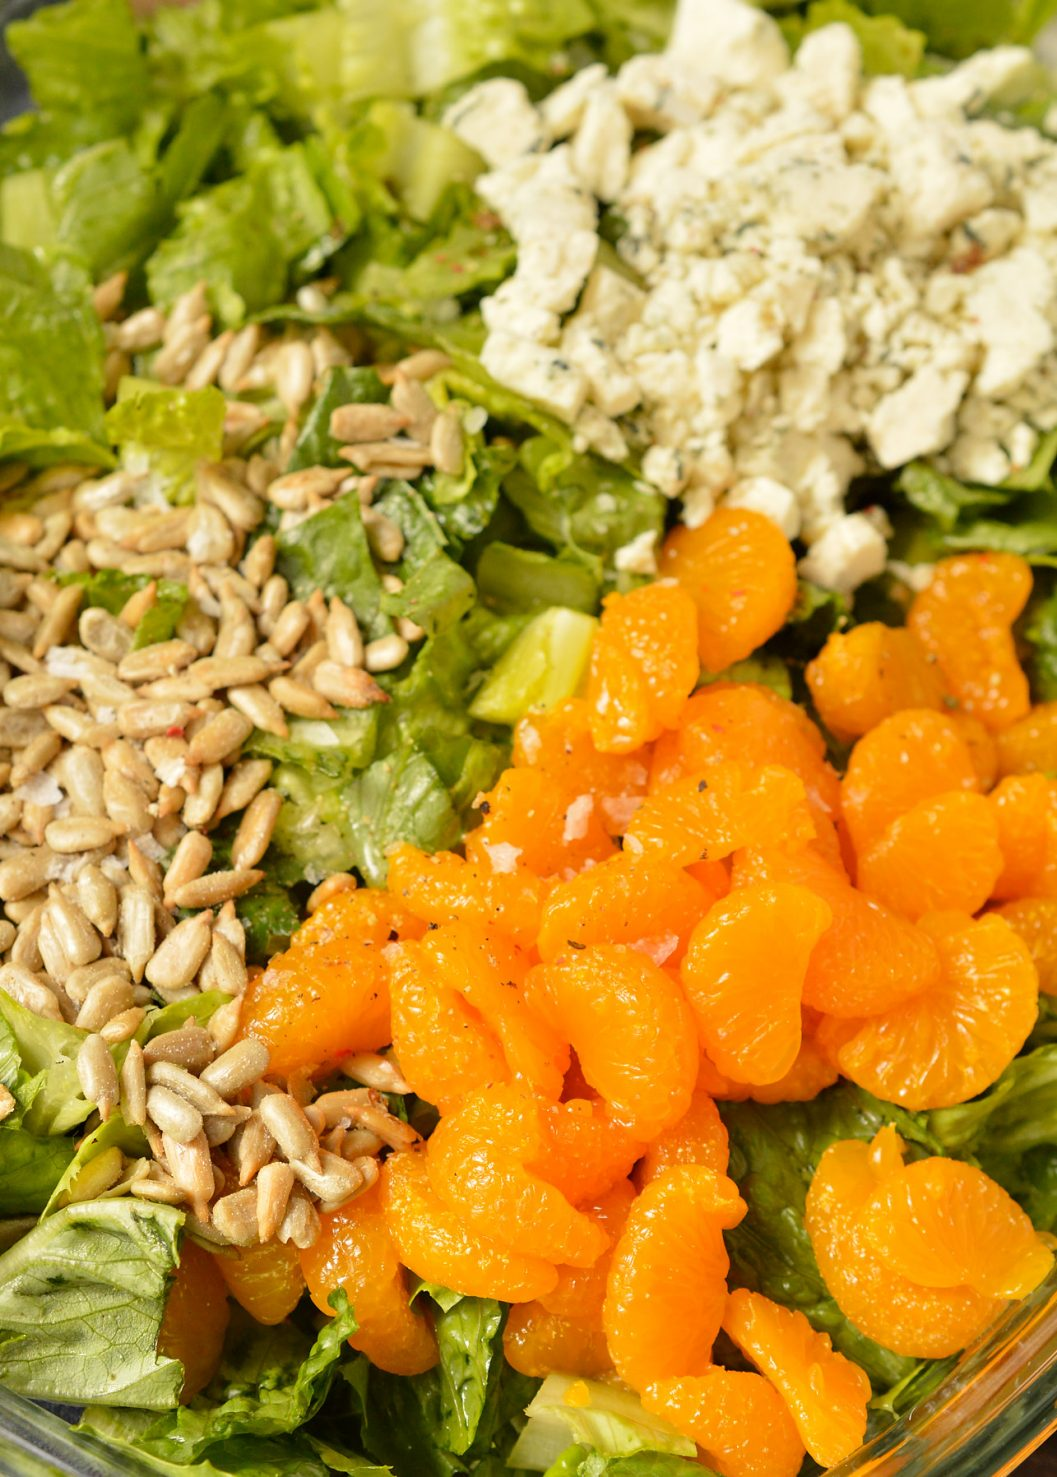 This Balsamic Mandarin Orange Salad may seem like an odd combo, but it works! The creamy balsamic dressing, sunflower seeds, gorgonzola cheese and mandarin oranges are the perfect combo of flavors. This is one of my all-time favorite salads because there is nothing boring about this recipe!